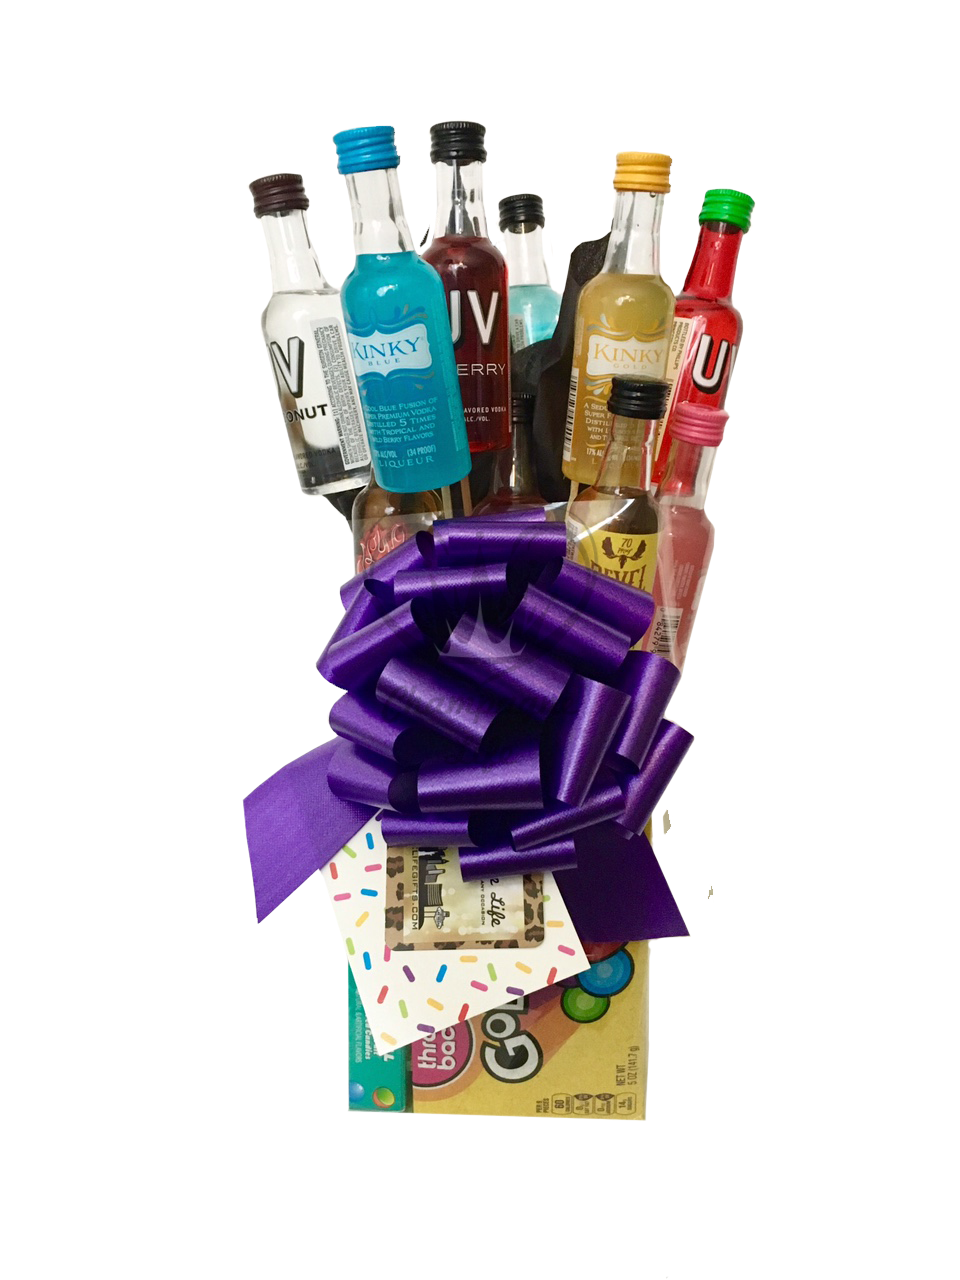 The Shots Bouquet Is Available For Same Day Delivery In Las Vegas NV Find Perfect Gift 21st Birthdays Or Bachelor And Bachelorette Parties At